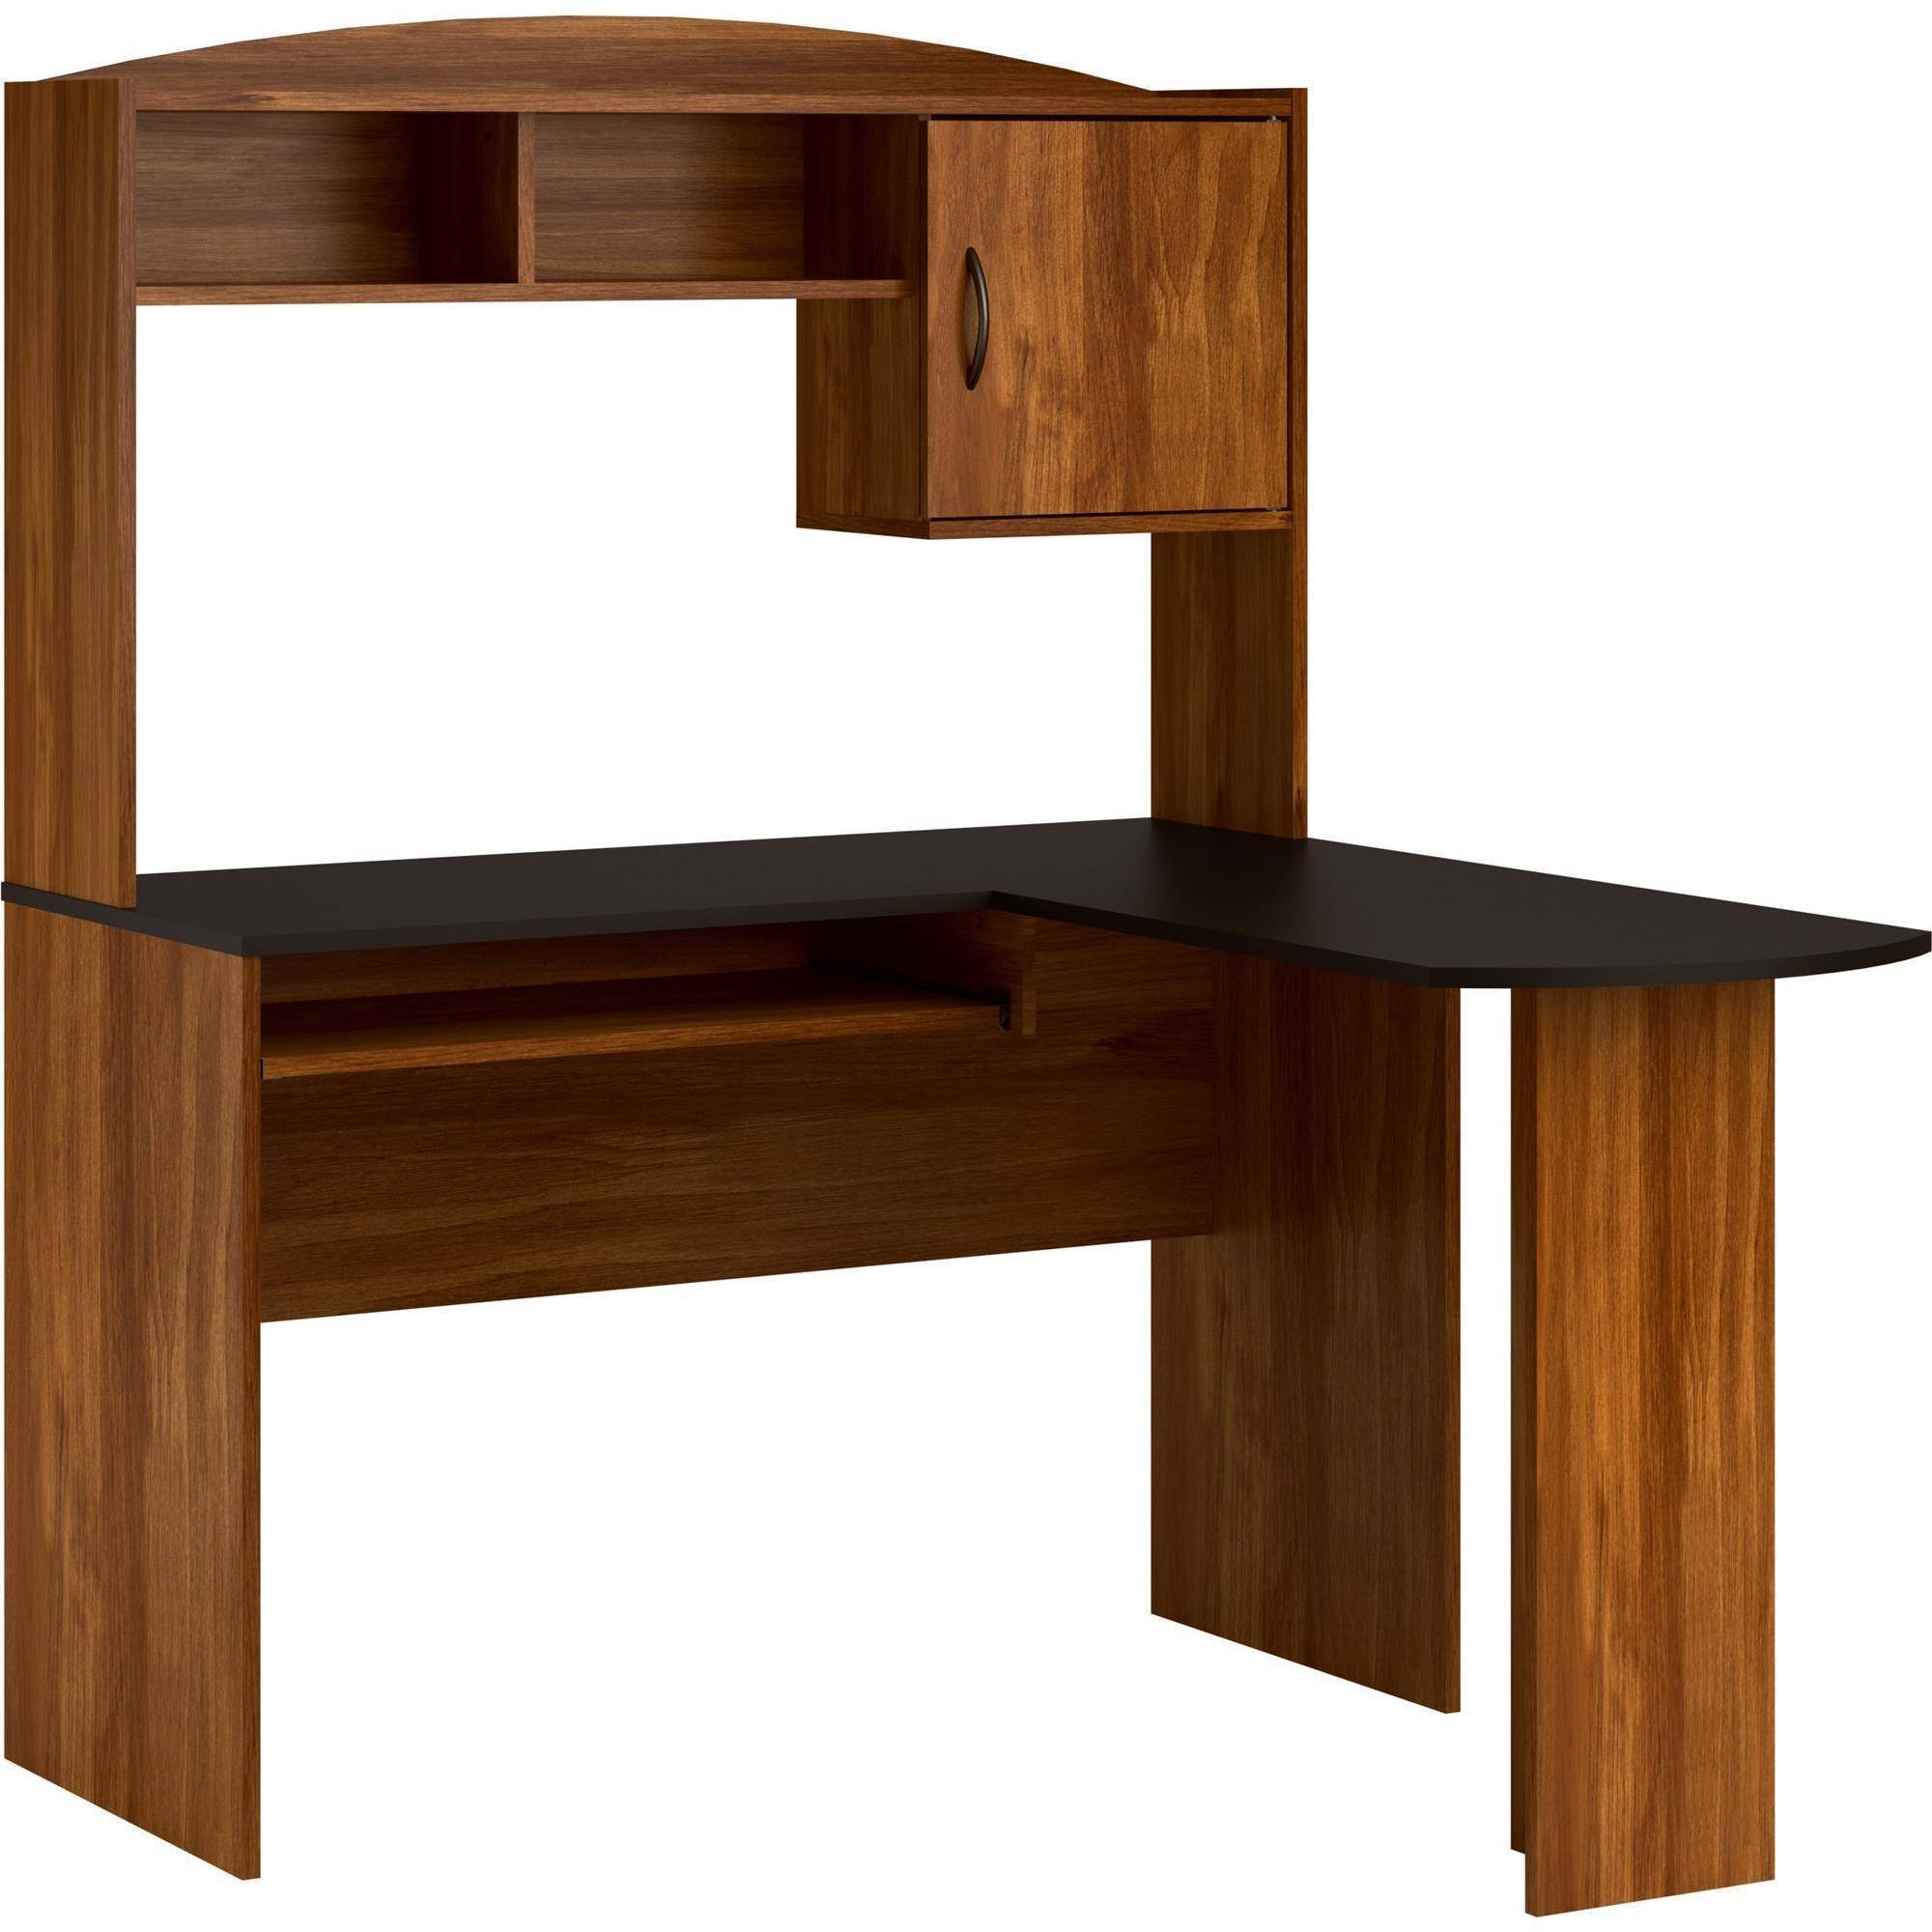 Mainstays LShaped Desk with Hutch Multiple Finishes  Walmartcom